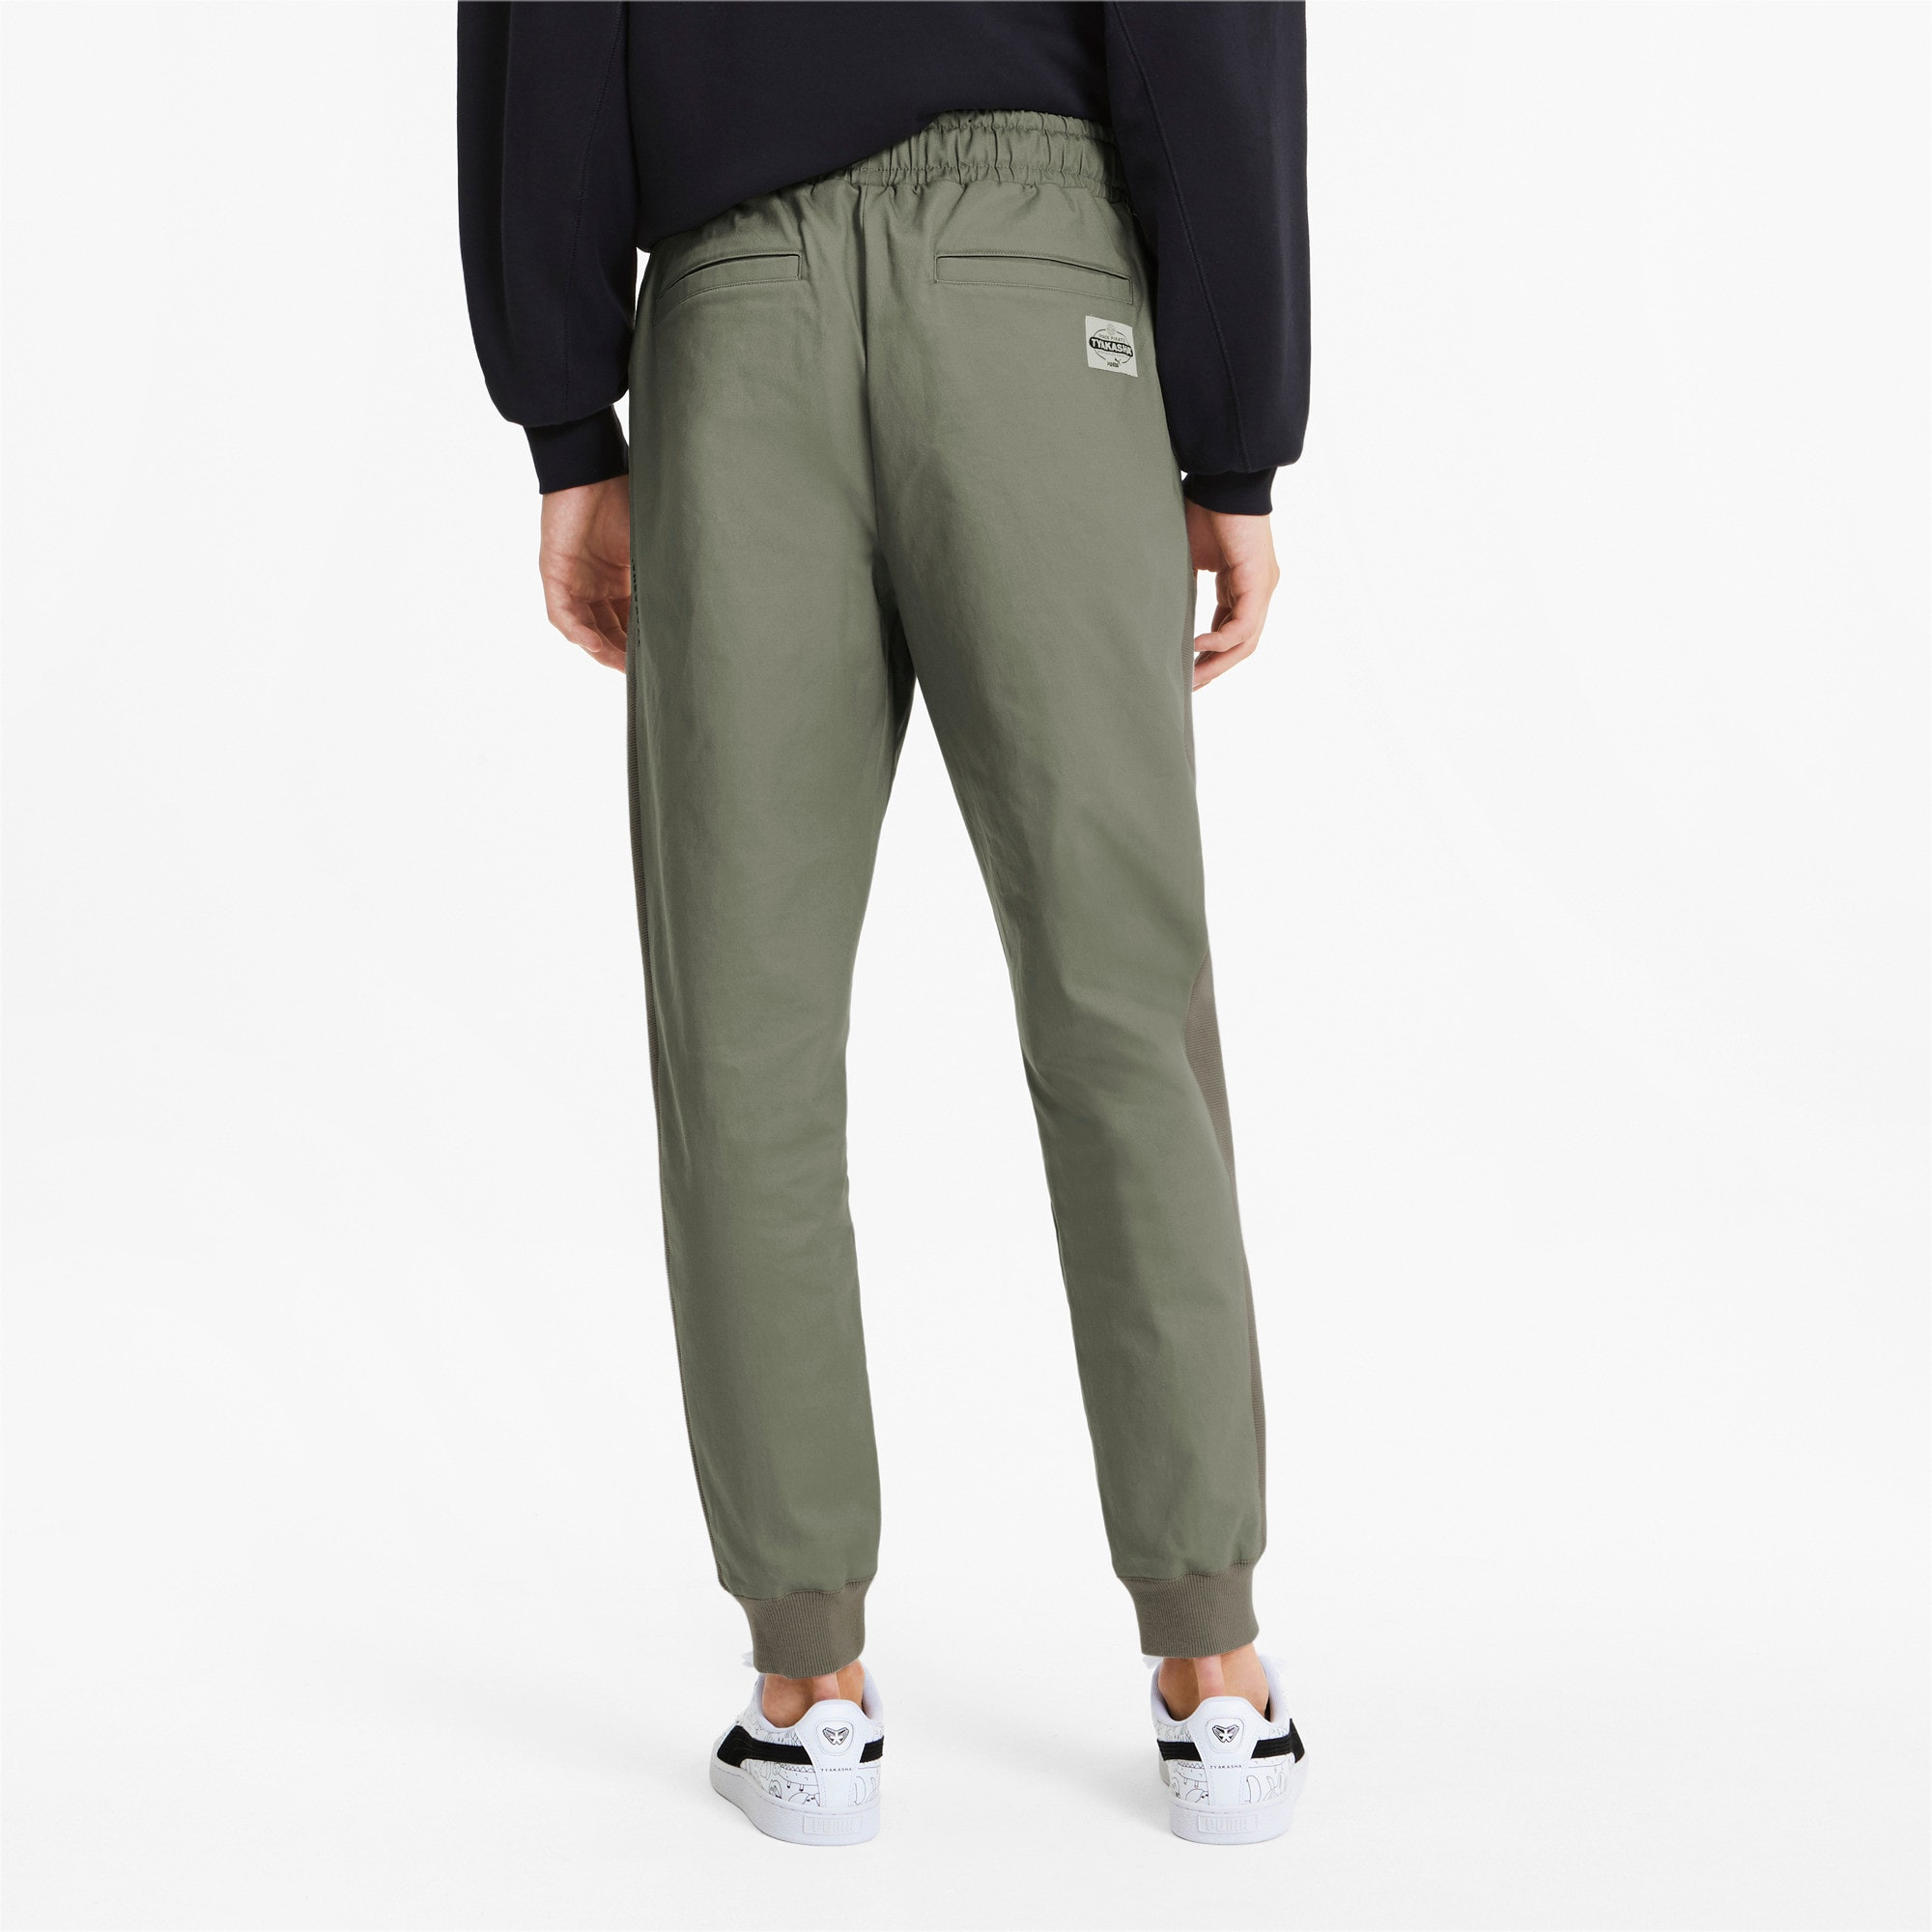 Thumbnail 3 of PUMA x TYAKASHA Men's Track Pants, Vetiver, medium